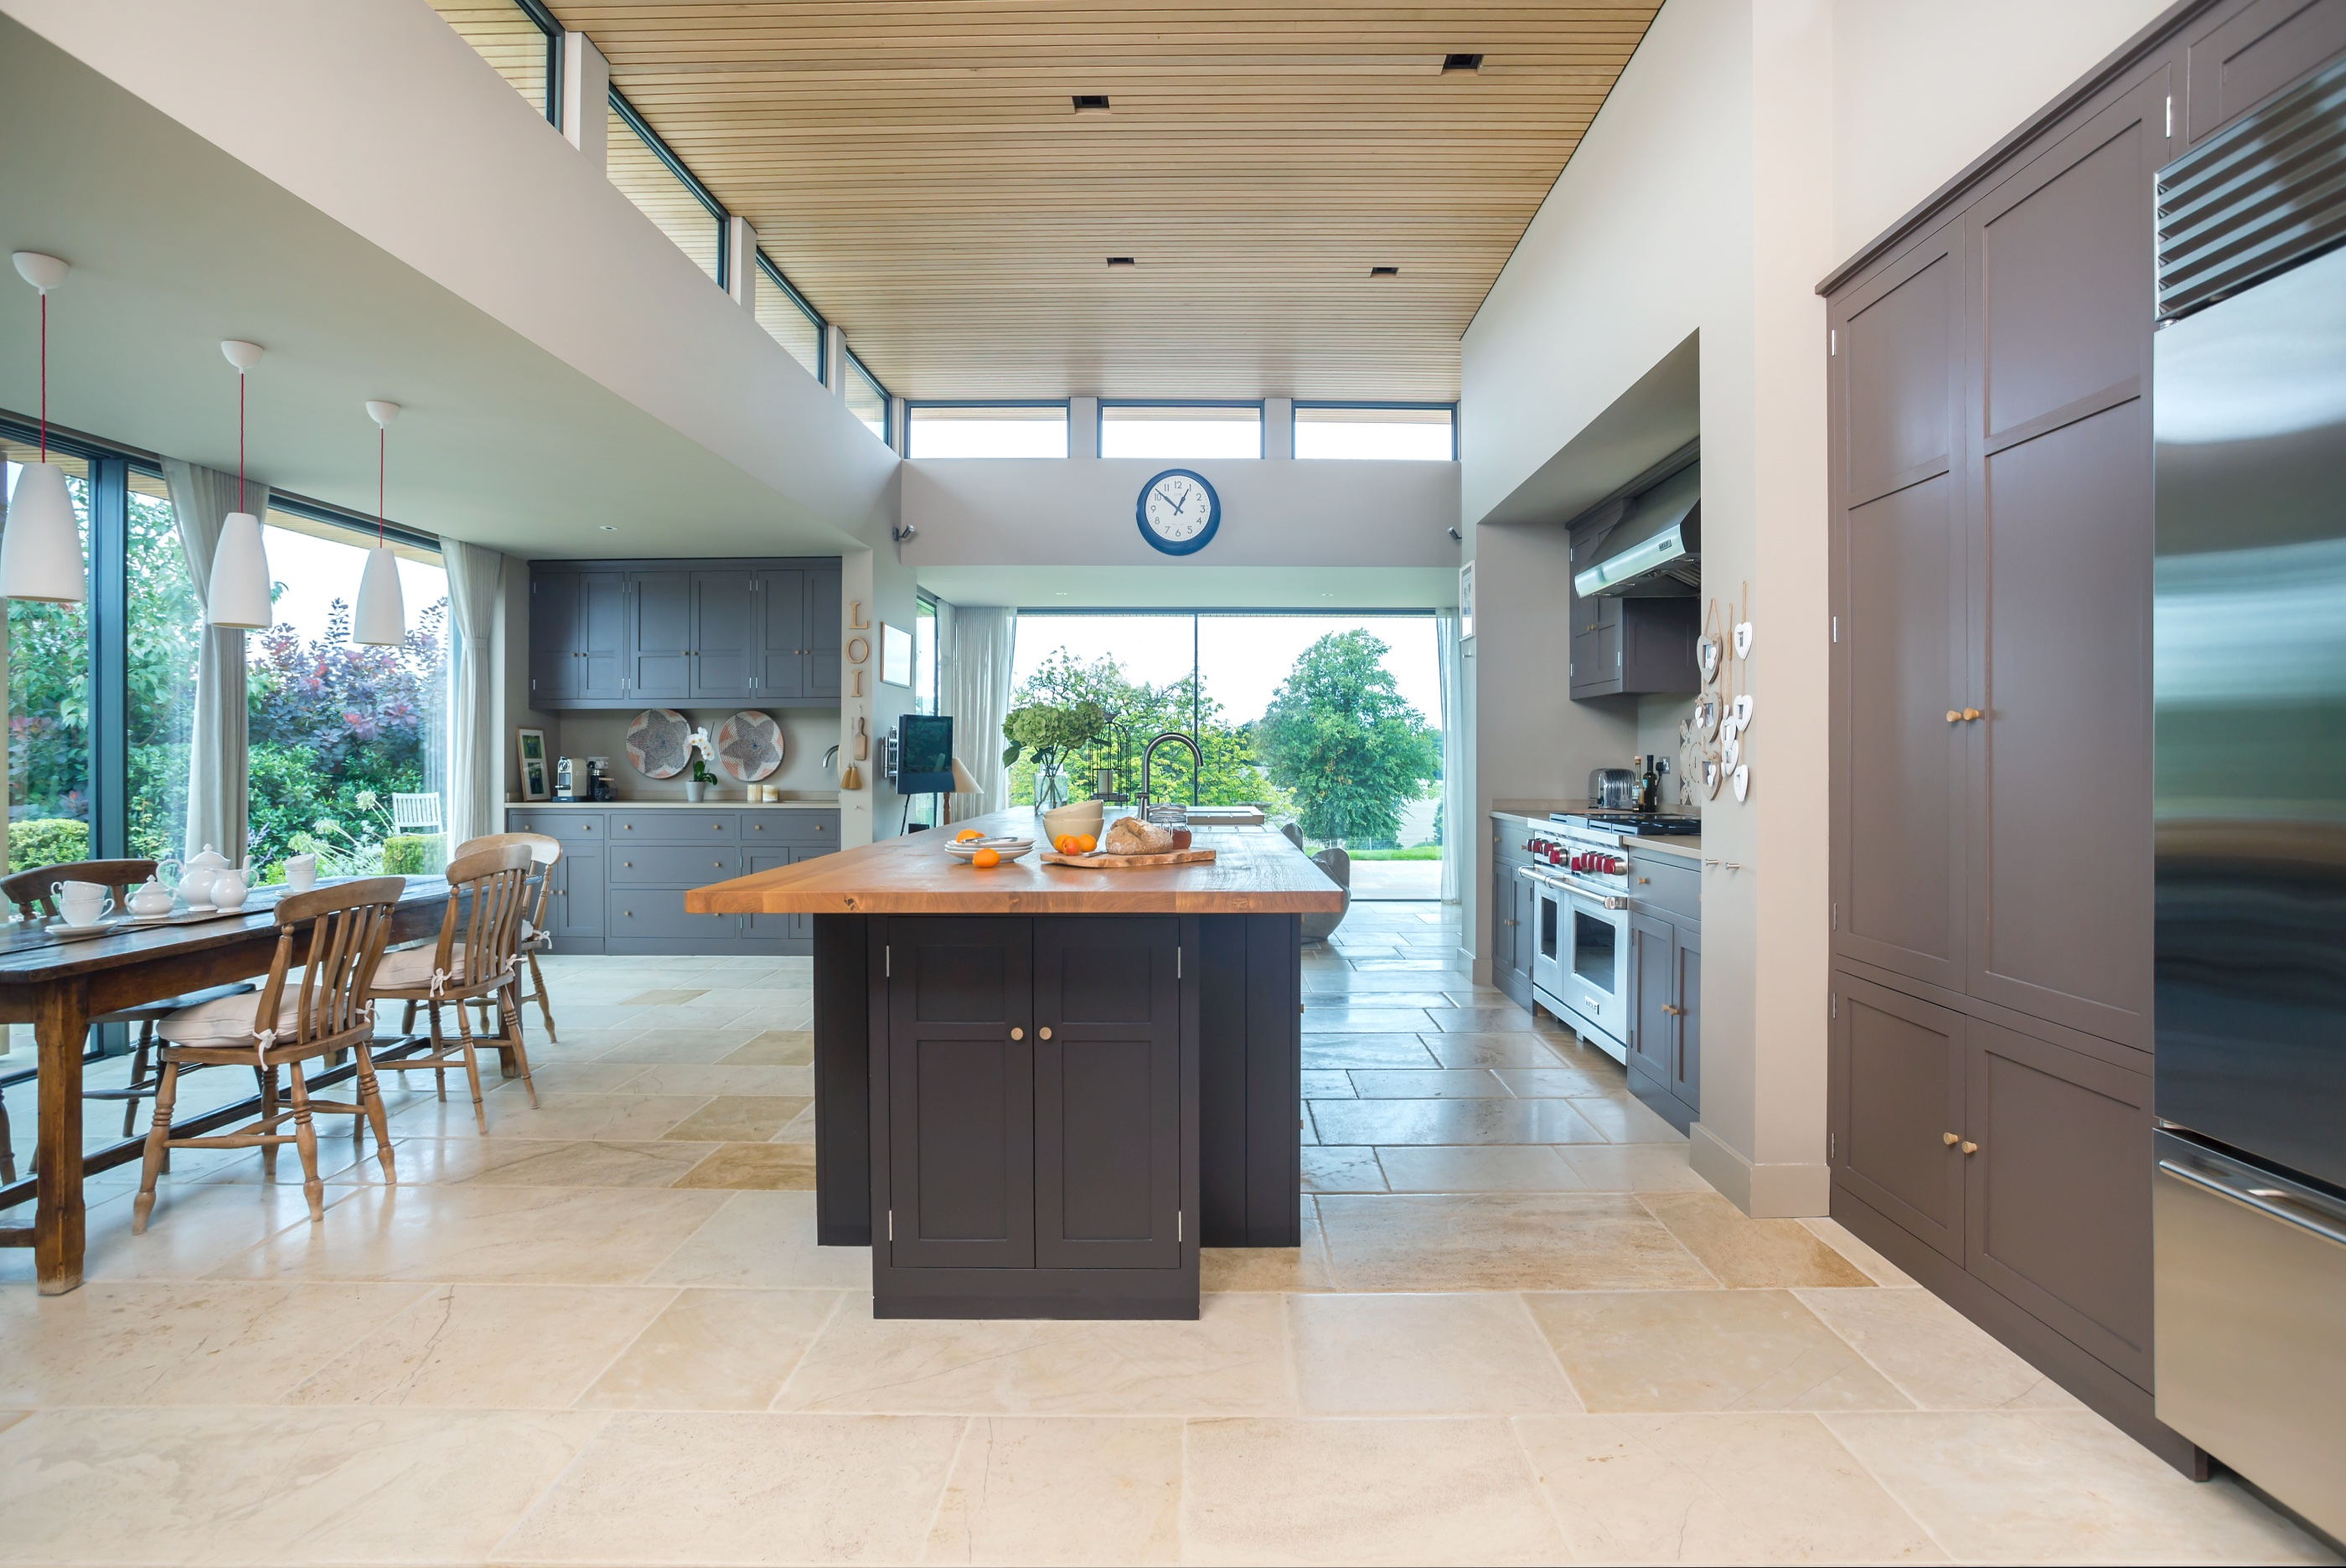 Open kitchen dining space with flagstone floor and a CK bespoke large island with a breakfast bar and built-in cabinets.